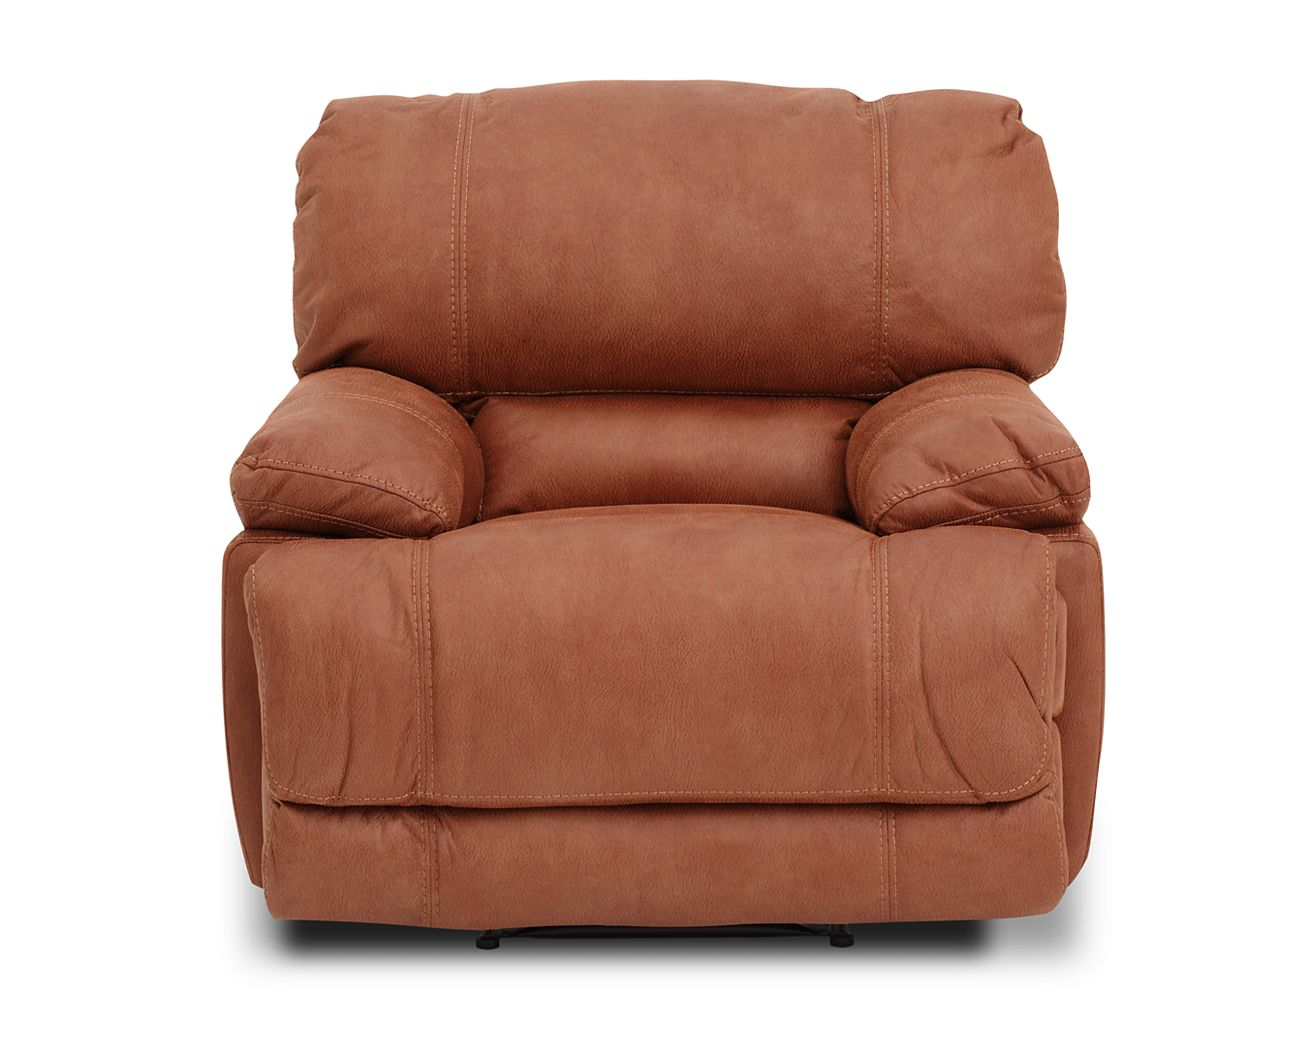 Small Bedroom Recliners Stylish Recliners Power Manuals Motion Furniture Row